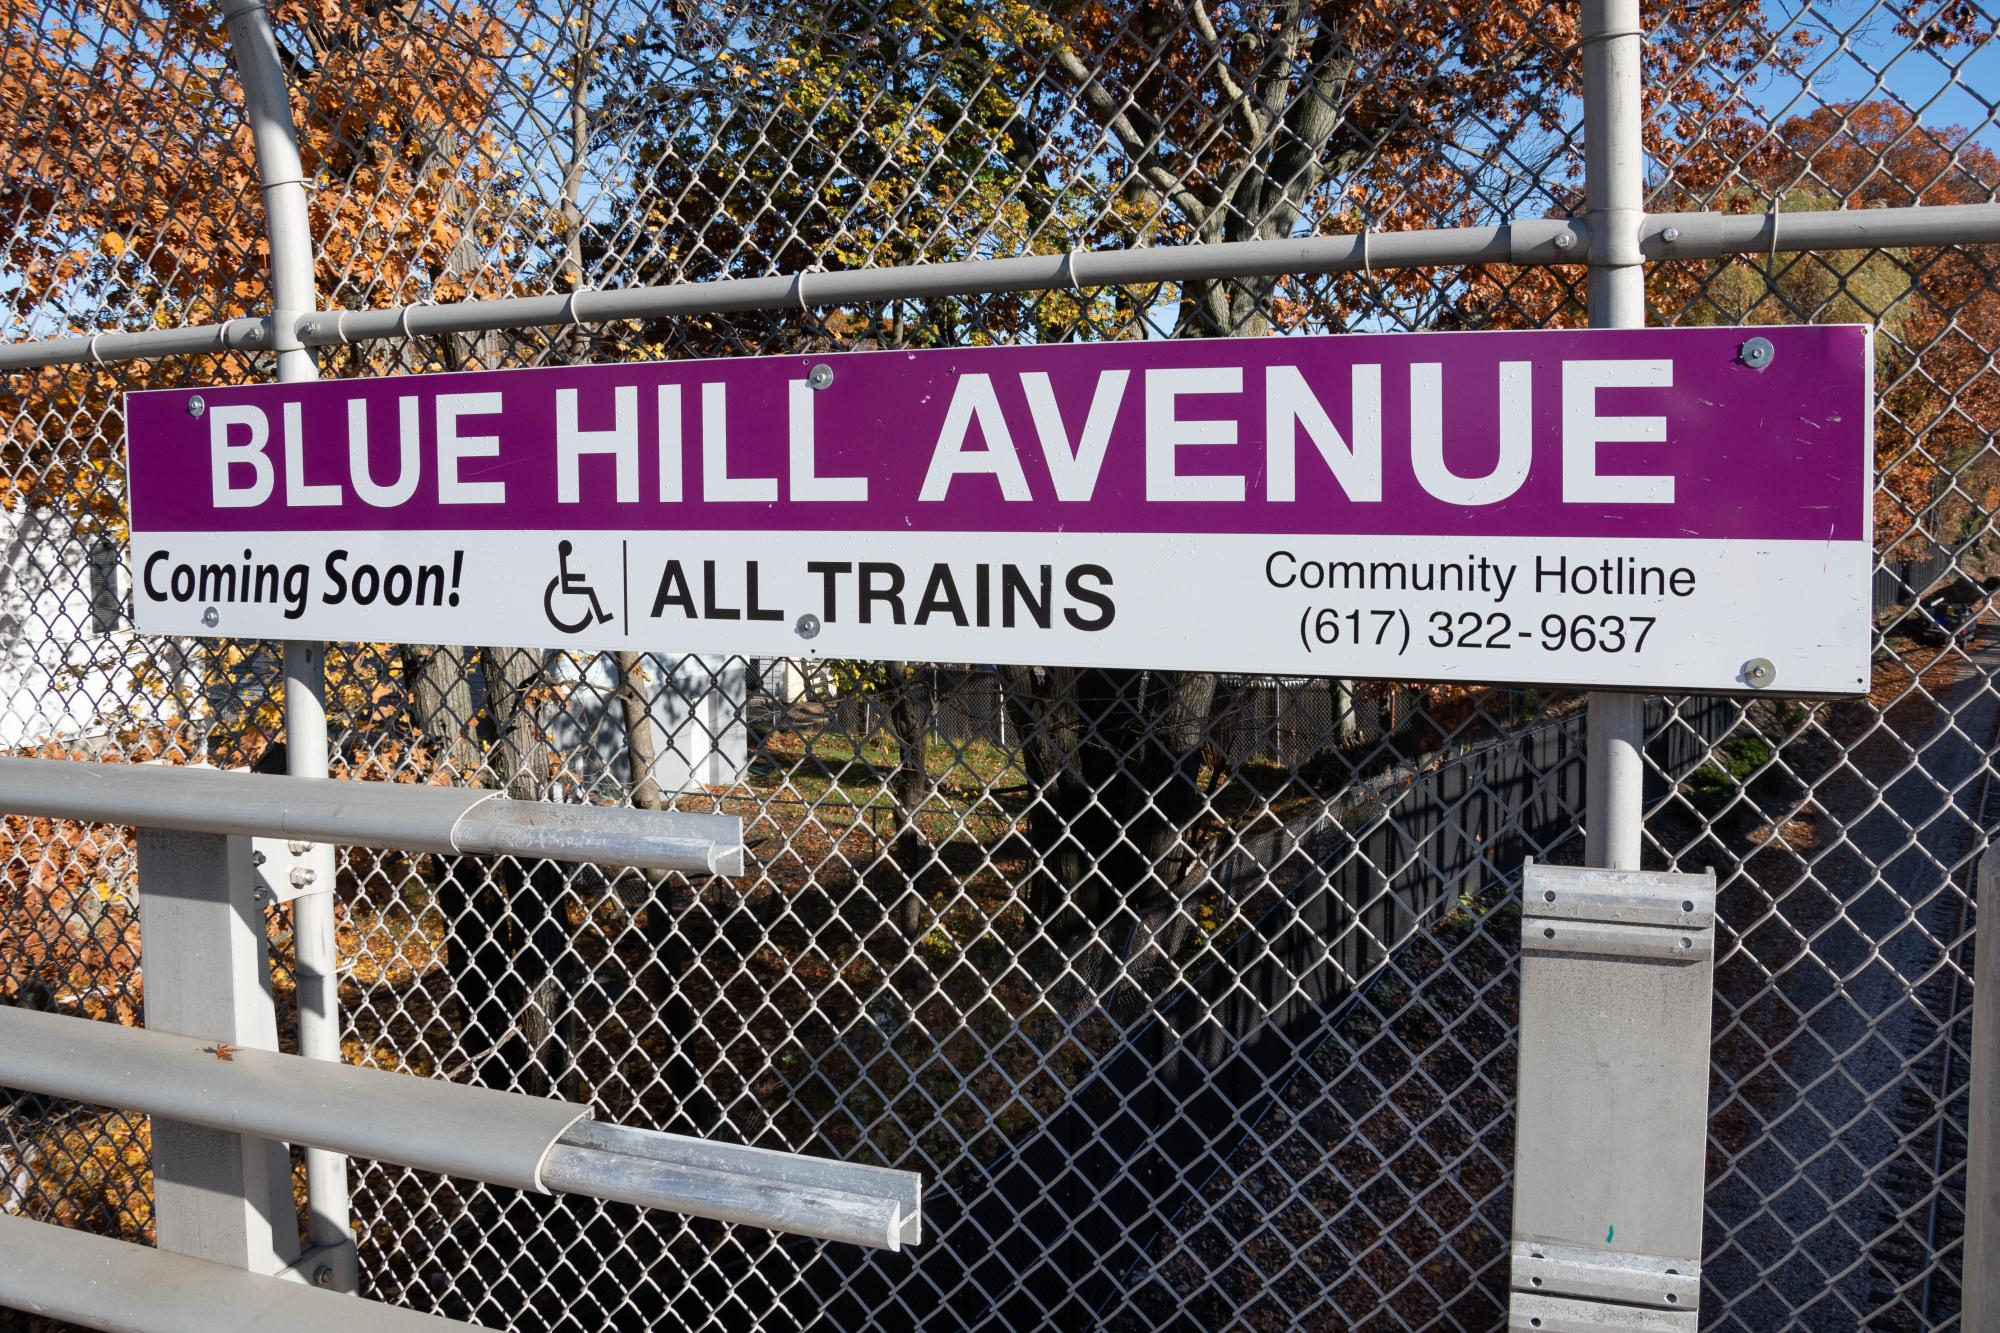 Commuter Rail sign (November 2018)